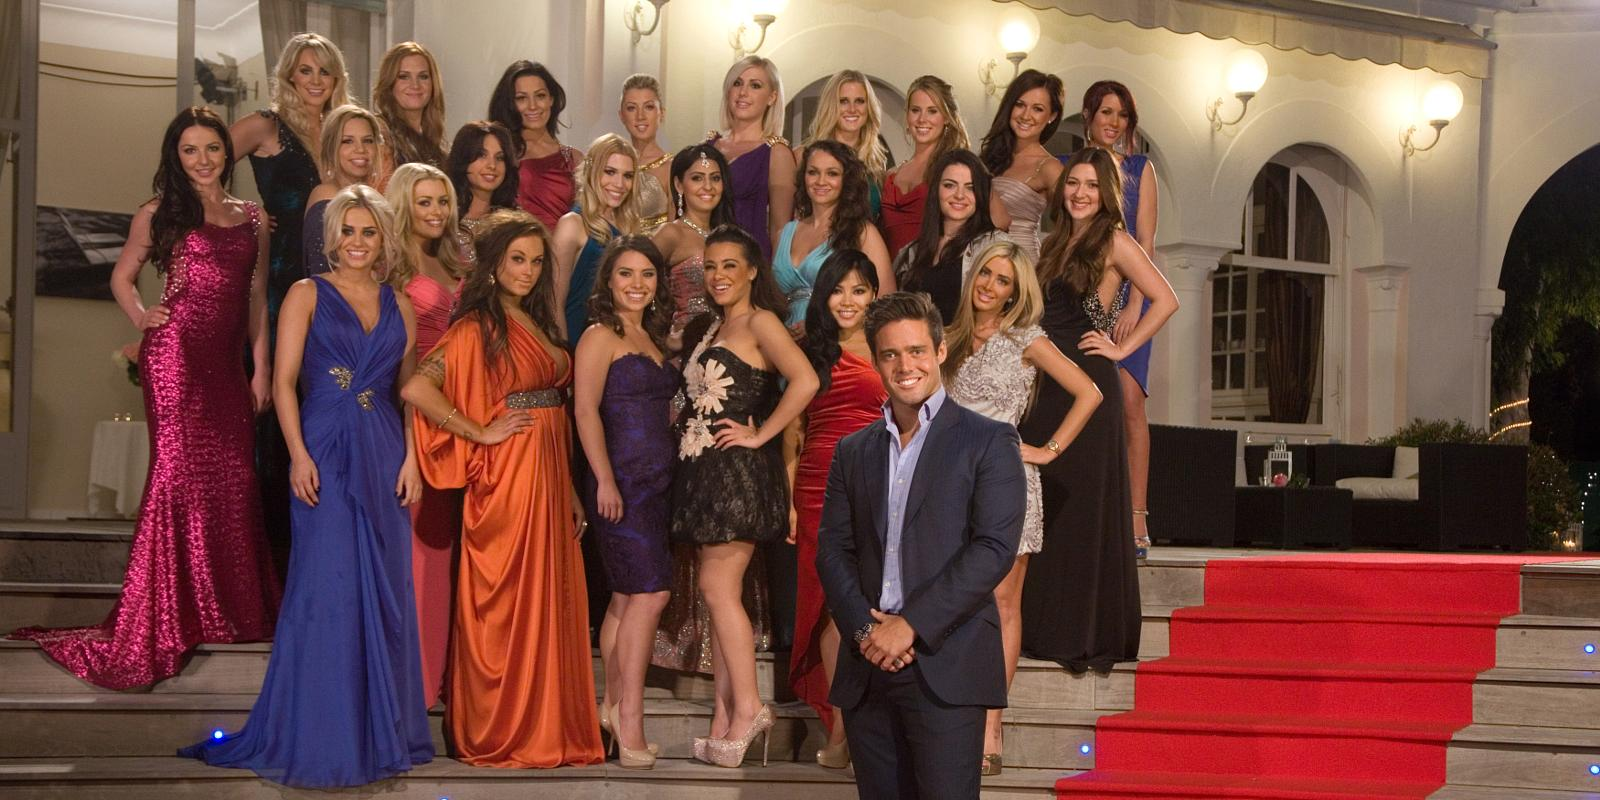 spencer matthews on bachelor axe i did my best with the